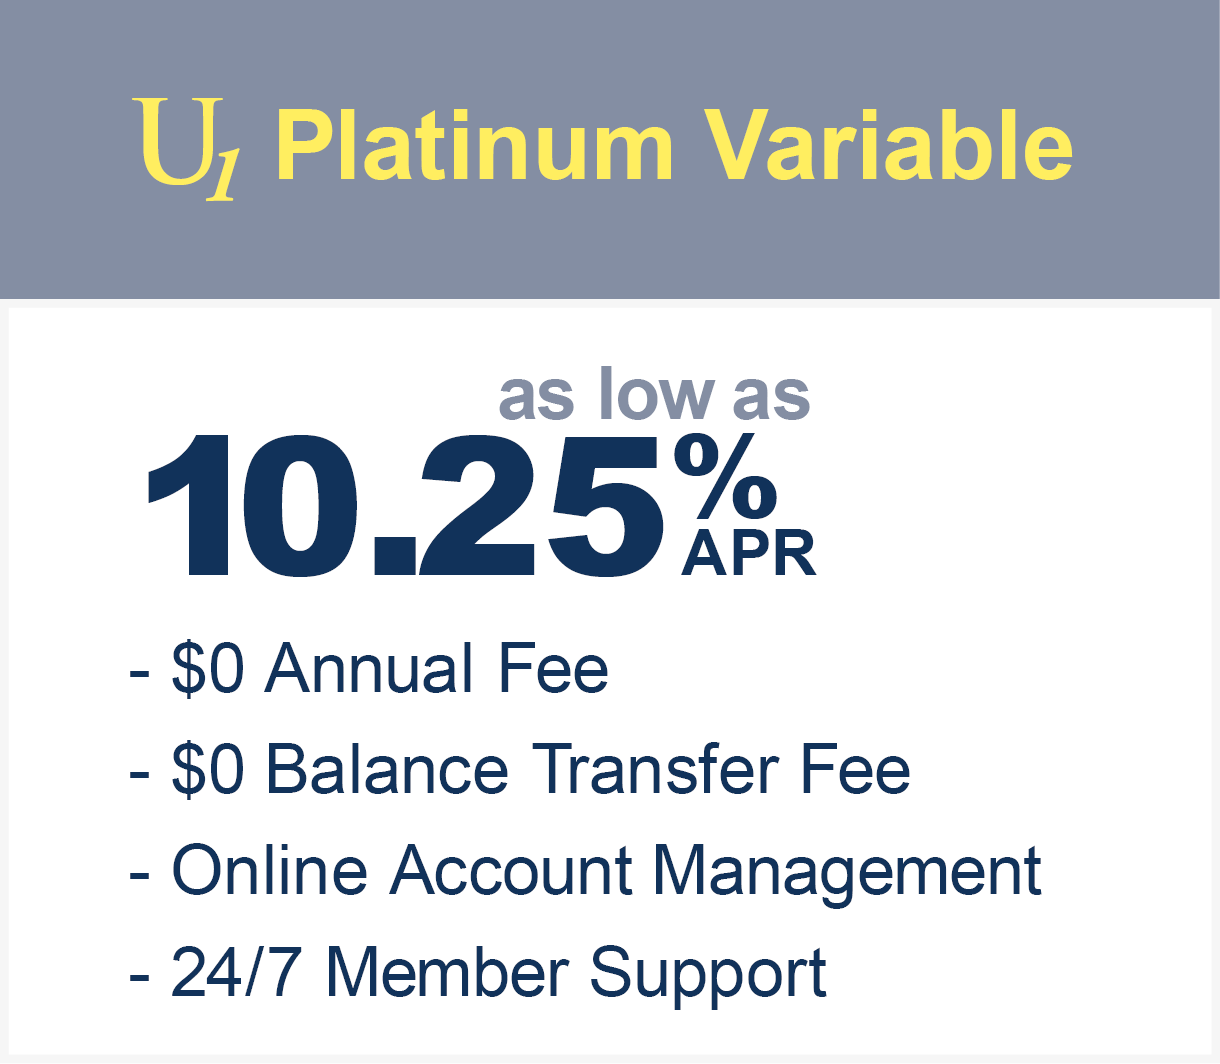 U1 Platinum variable as low as 11.75% APR with $0 balance transfer fee and no annual fee. Online account management and 24/7 member support.